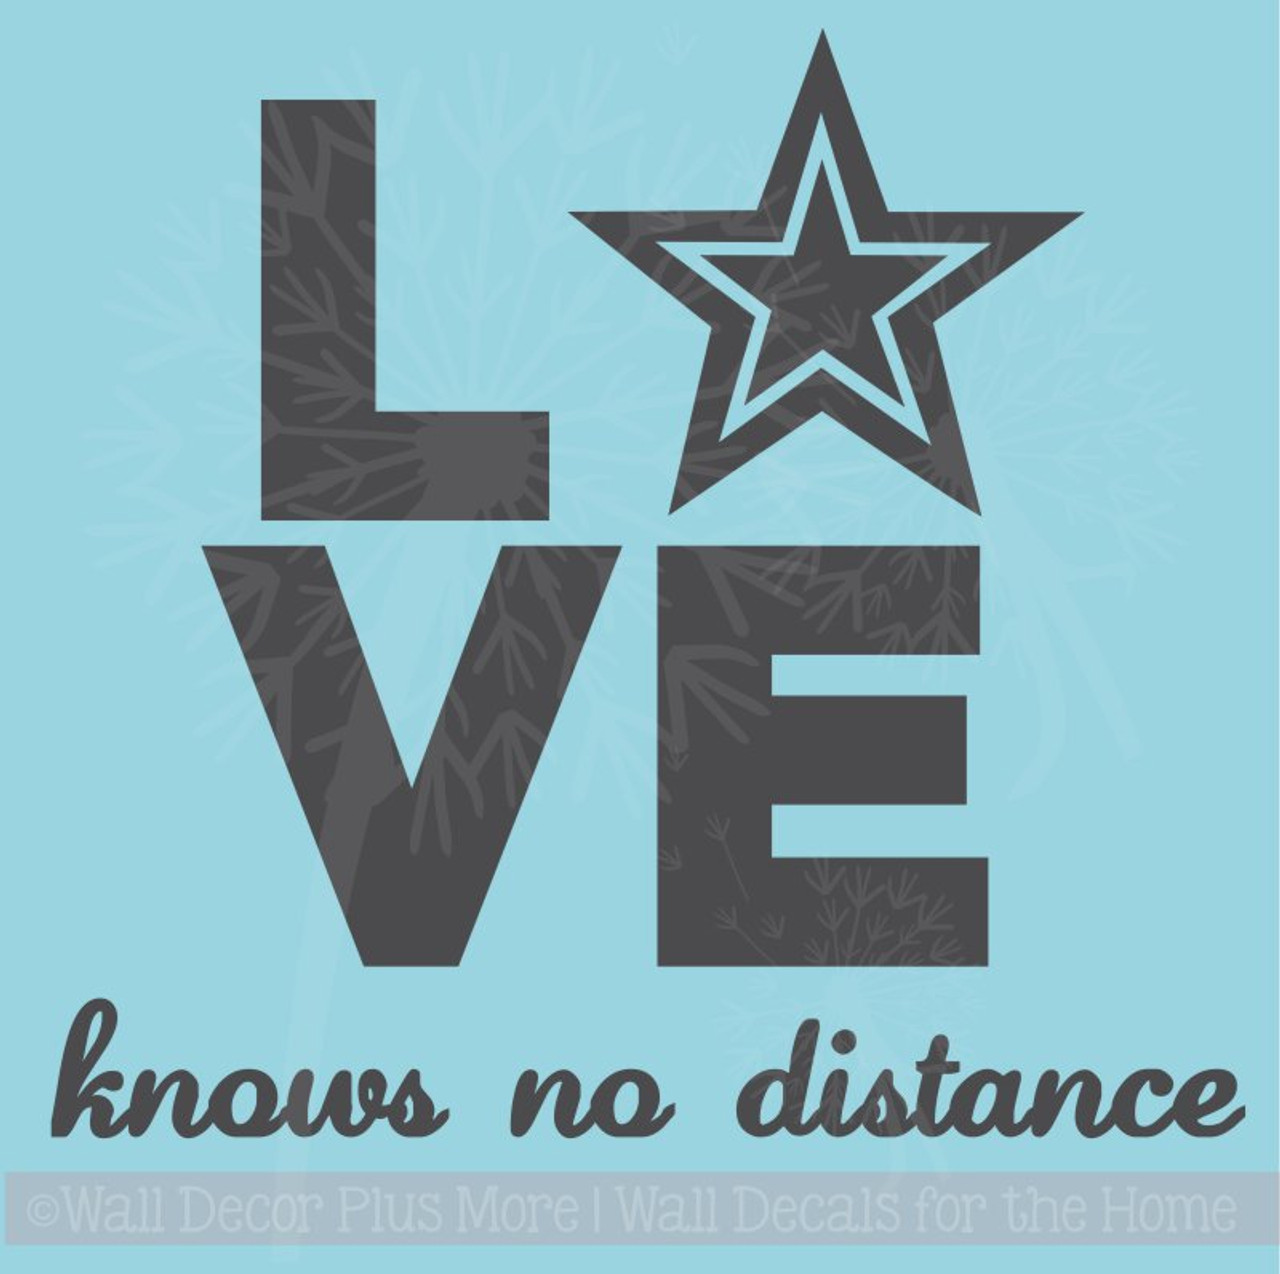 Knows No Distance Army Wall Art Quote Vinyl Letters for Home Decor on mid century modern wall design, inspirational wall design, curtain wall design, handmade wall design, decorating idea wall design, exterior home wall design, rustic log cabin wall design, quilting wall design, modern interior wall design,